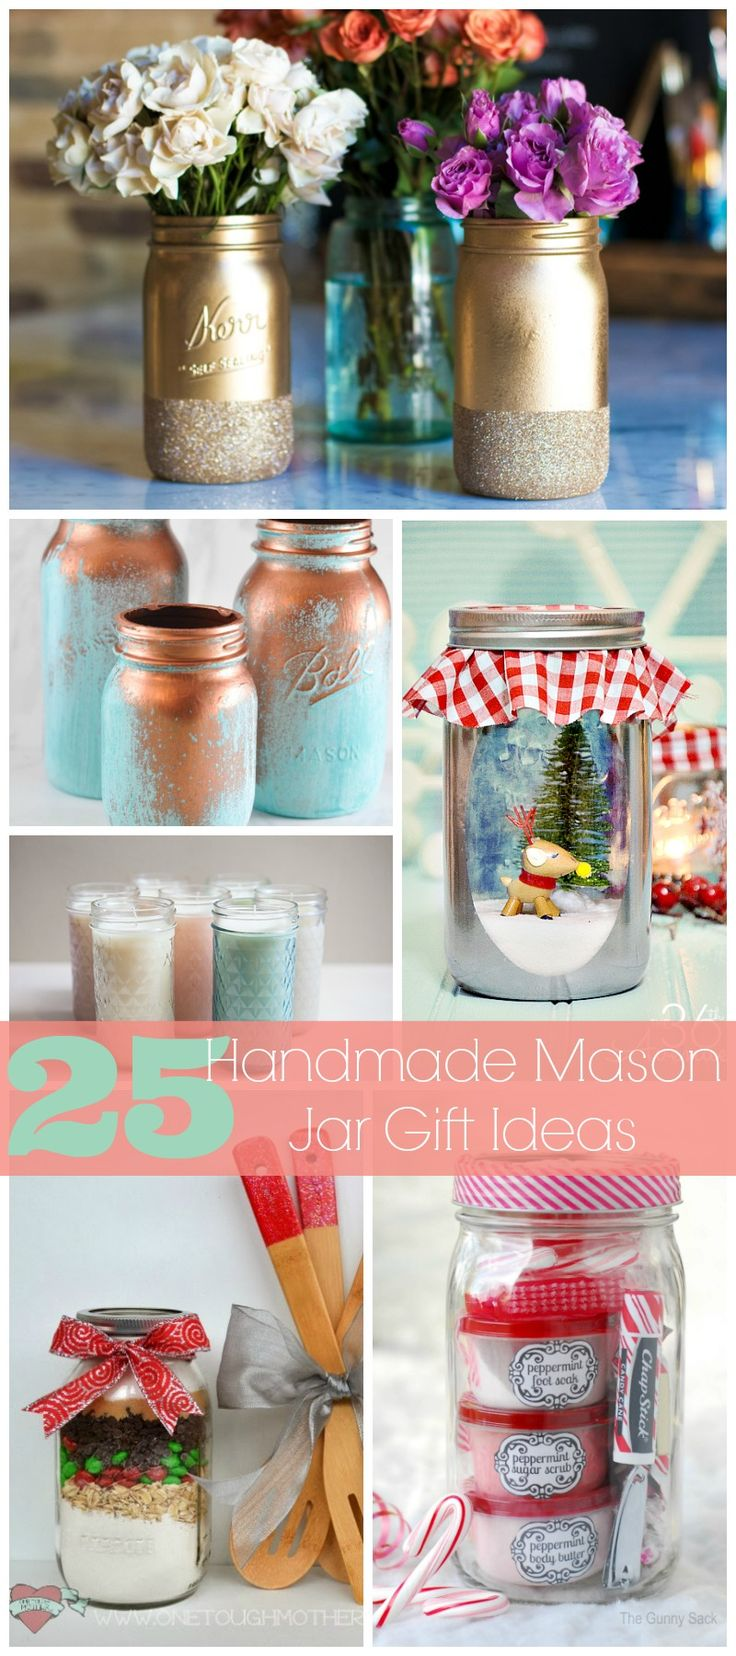 Gifts for Avid Readers plus a Handmade Gift Library - The Benson Street